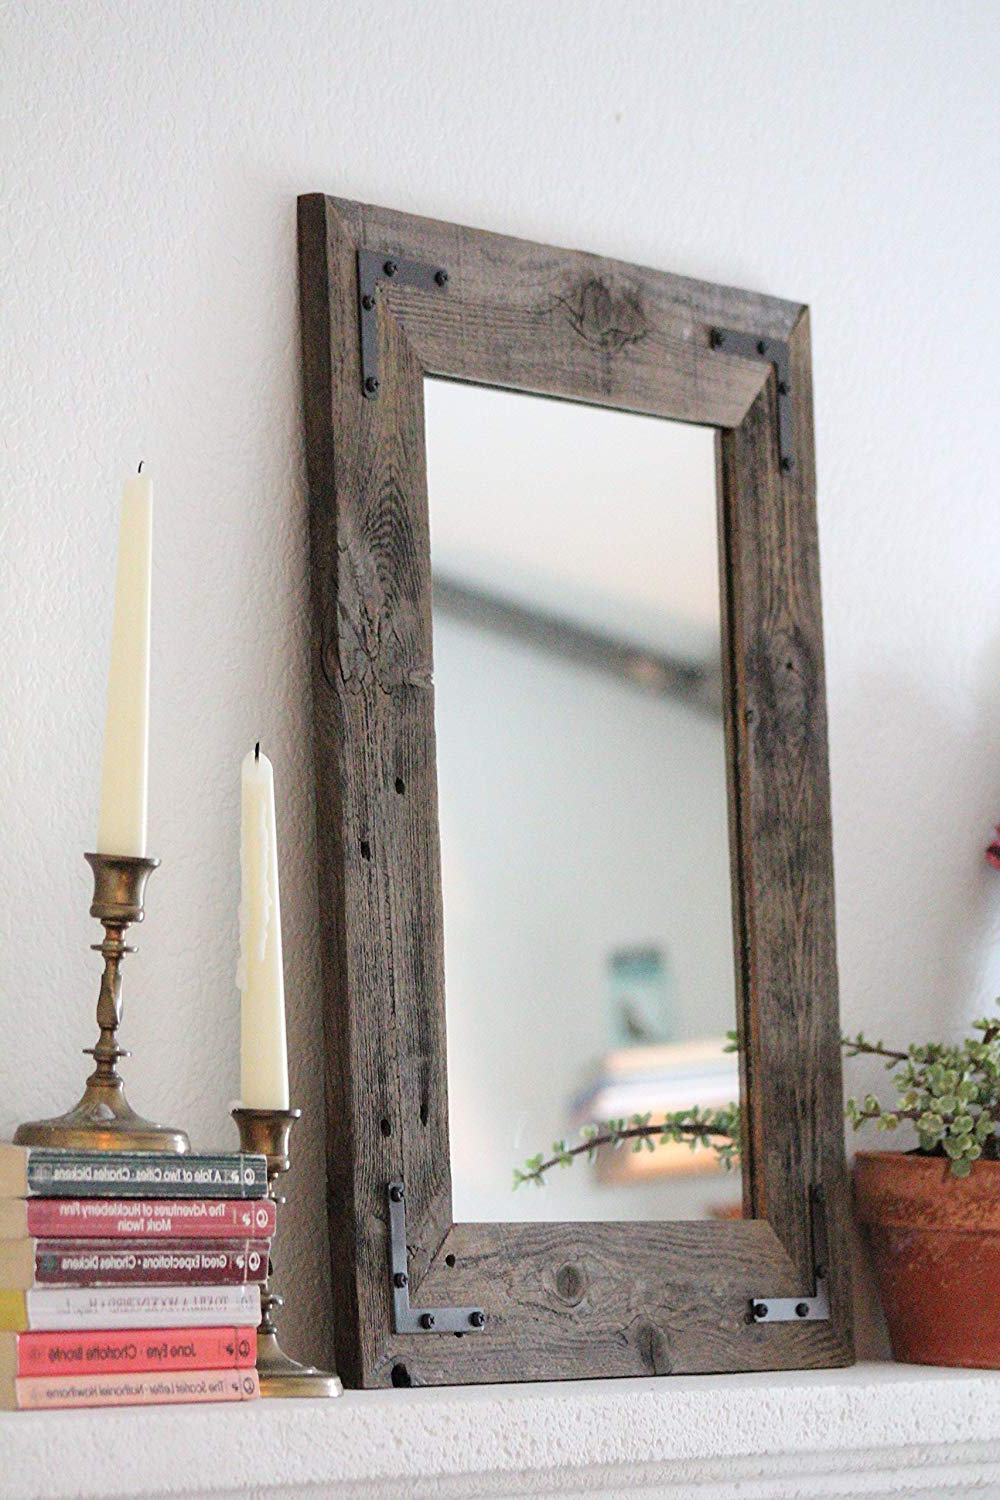 Current Rustic Wall Mirror – Wall Mirror – 18 X 24 Vanity Mirror – Bathroom Mirror  – Rustic Mirror – Reclaimed Wood Mirror – Bathroom Vanity Within Standard Wall Mirrors (Gallery 2 of 20)